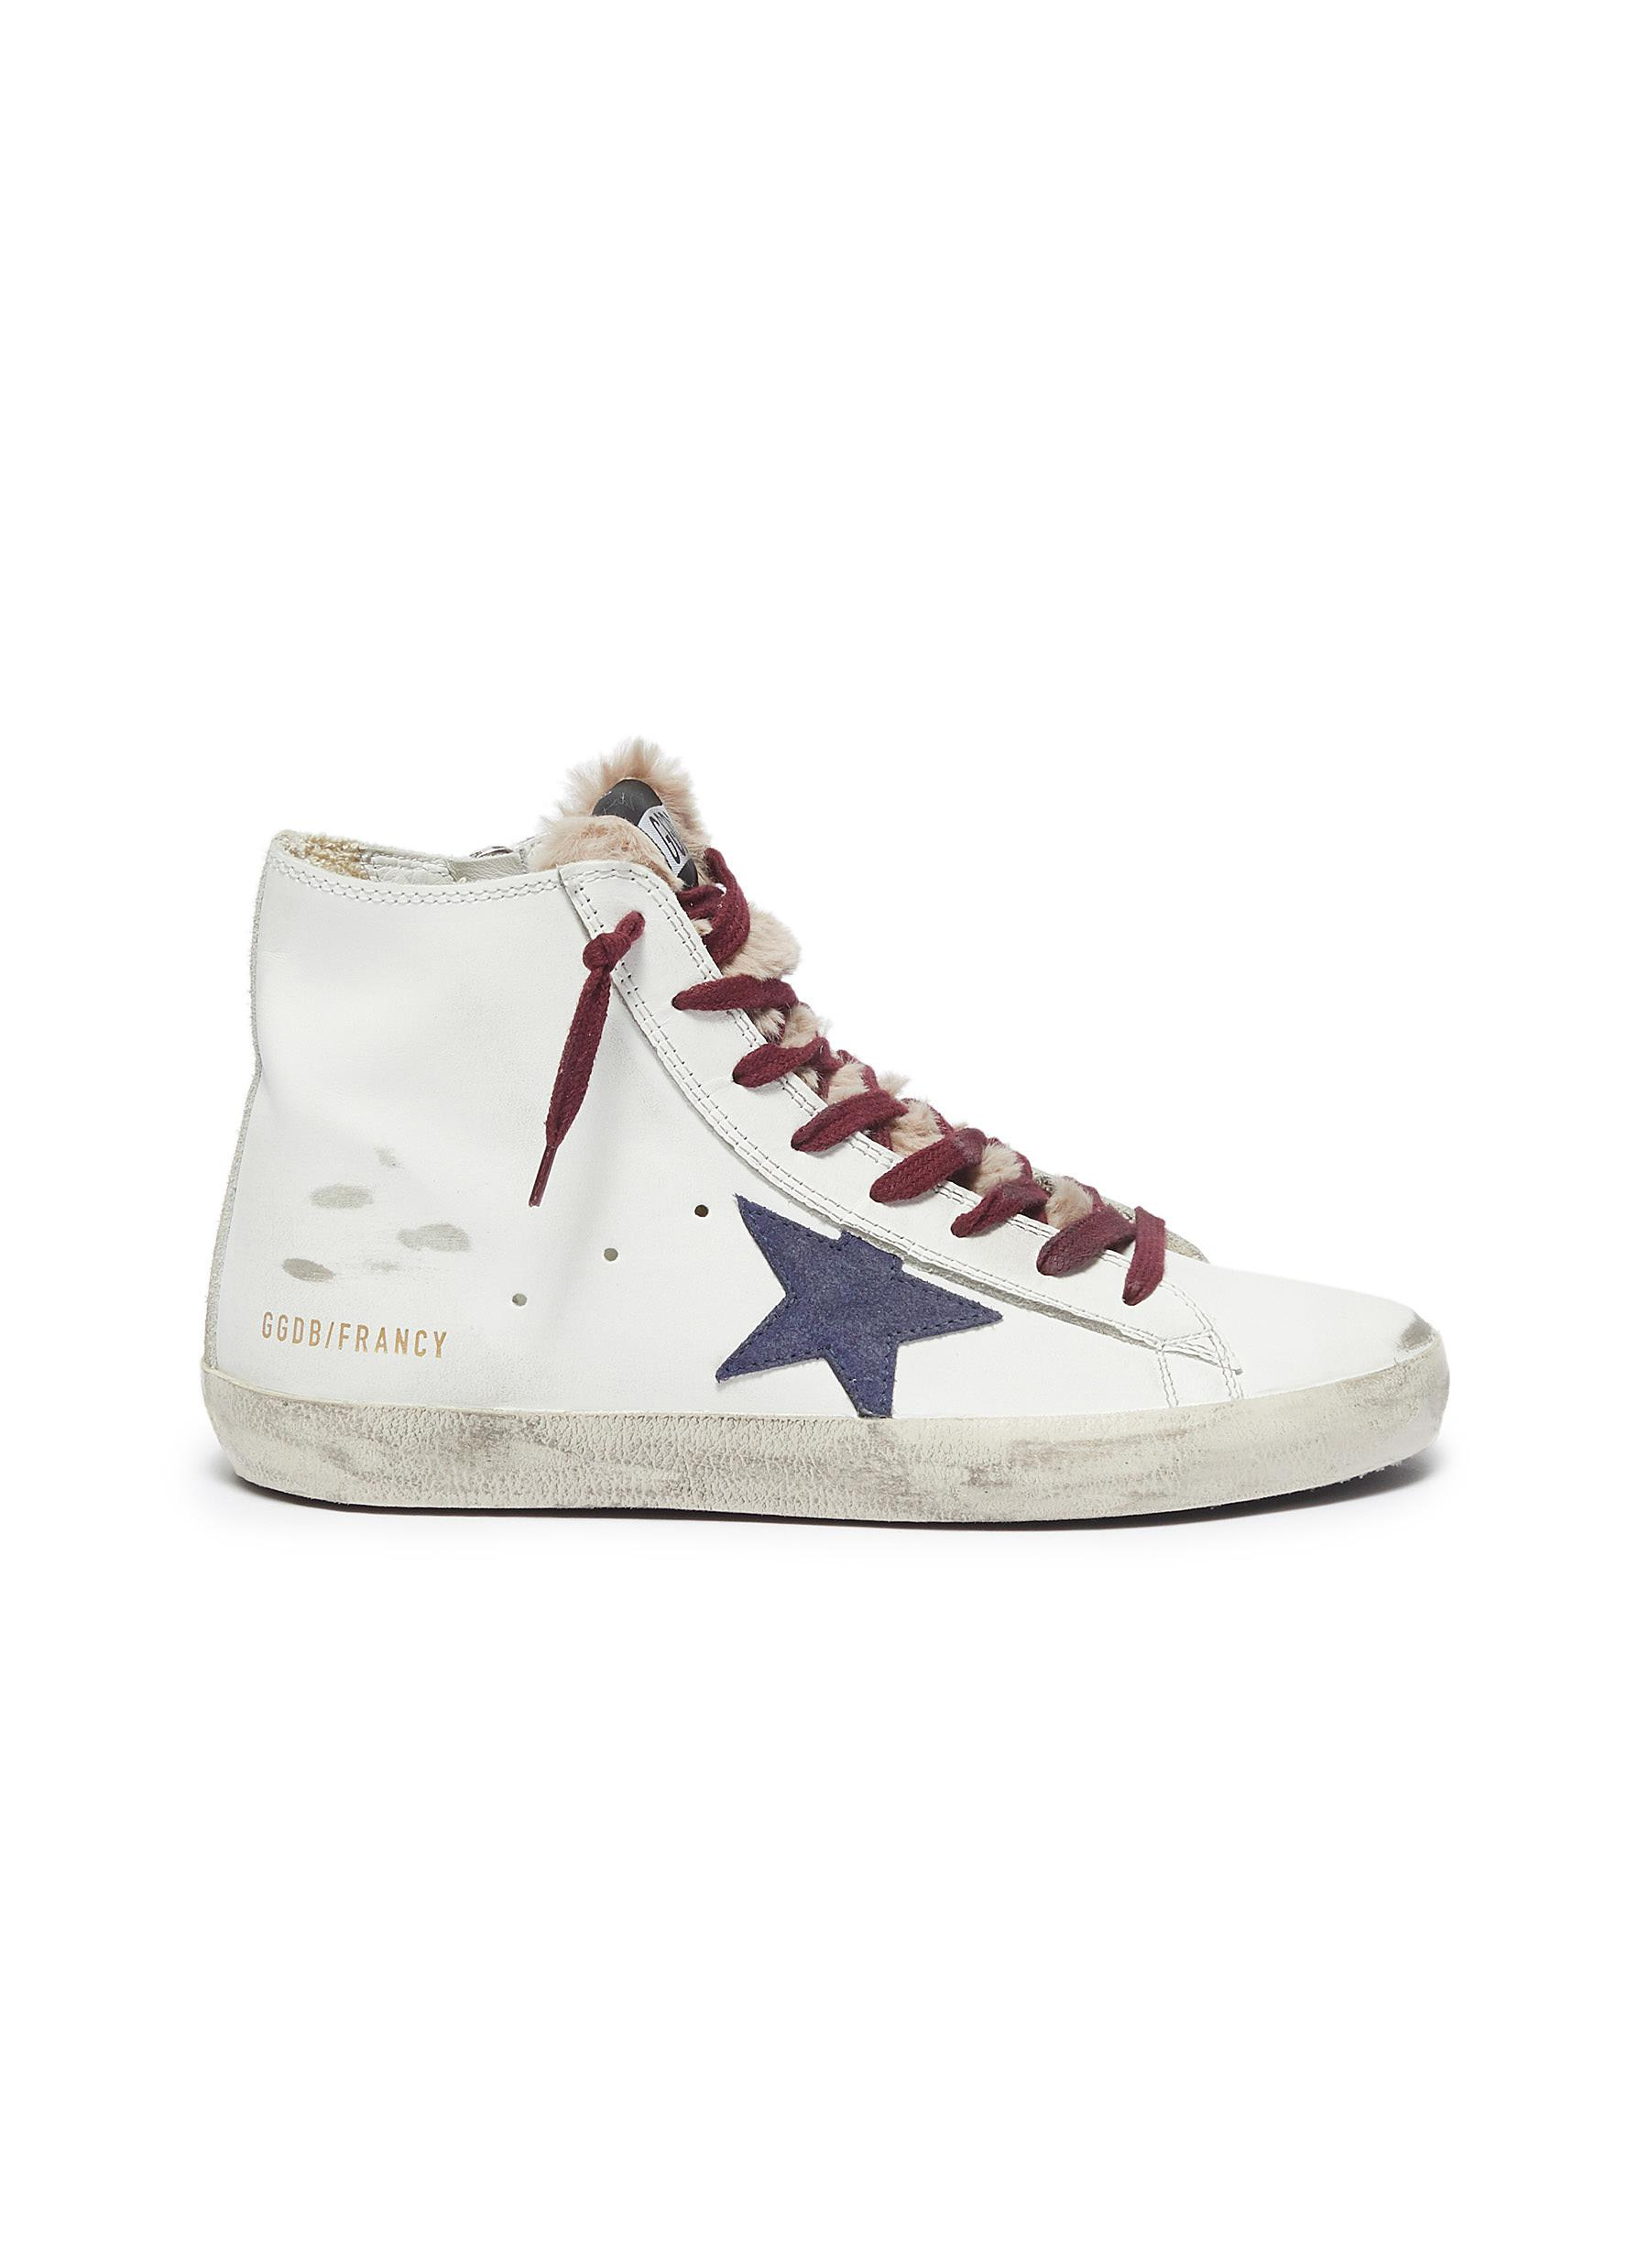 Golden Goose Sneakers 'Francy' fur tongue contrast laces star print sneakers